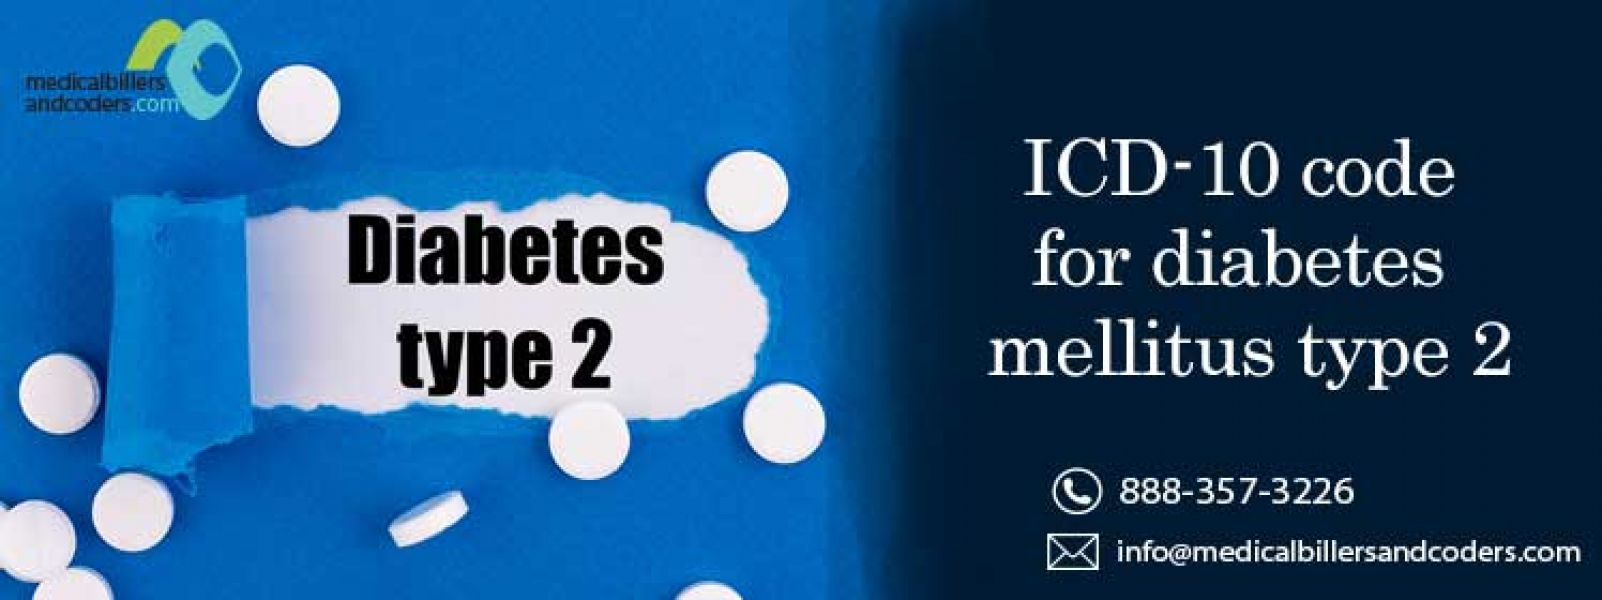 ICD-10 code for diabetes mellitus type 2